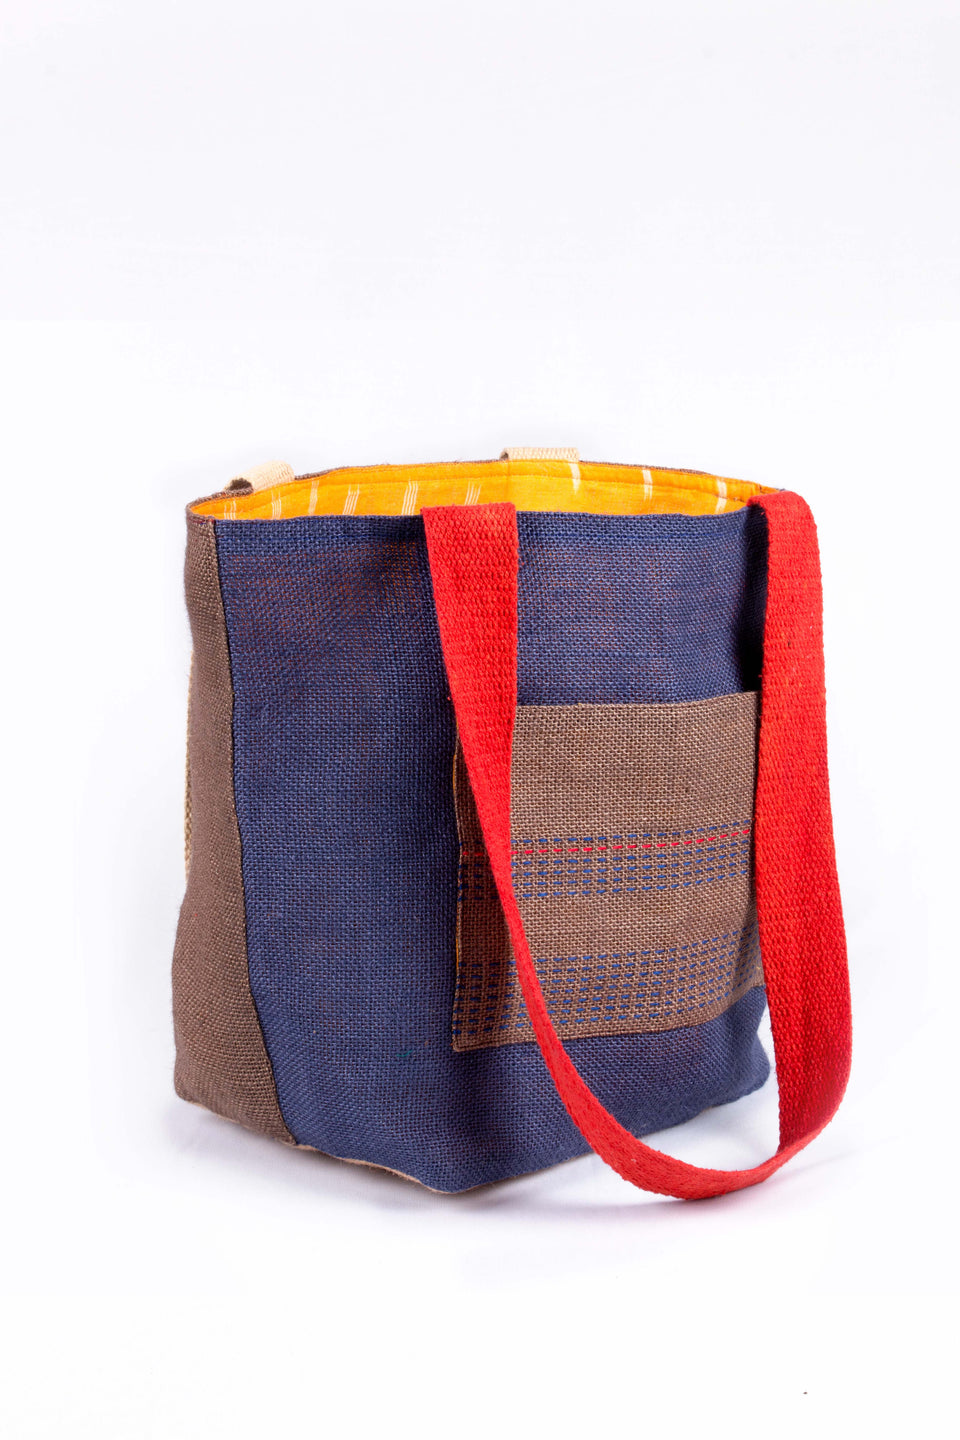 Bishesh Tote in Navy, Brown and Yellow